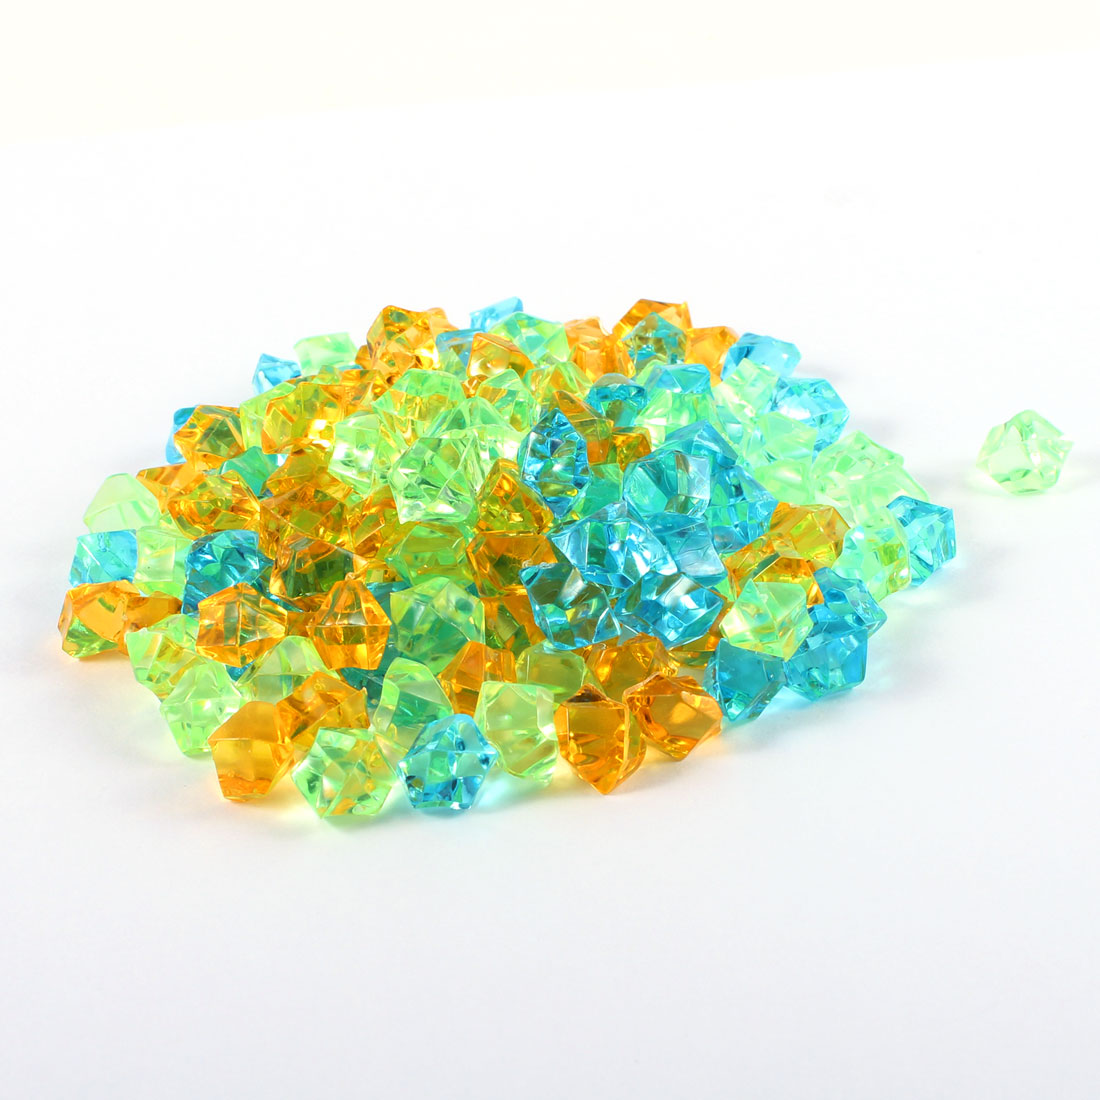 150PCS Aquariums Fish Tank Irregular Plastic Crystal Stones Decor Yellow Green Blue